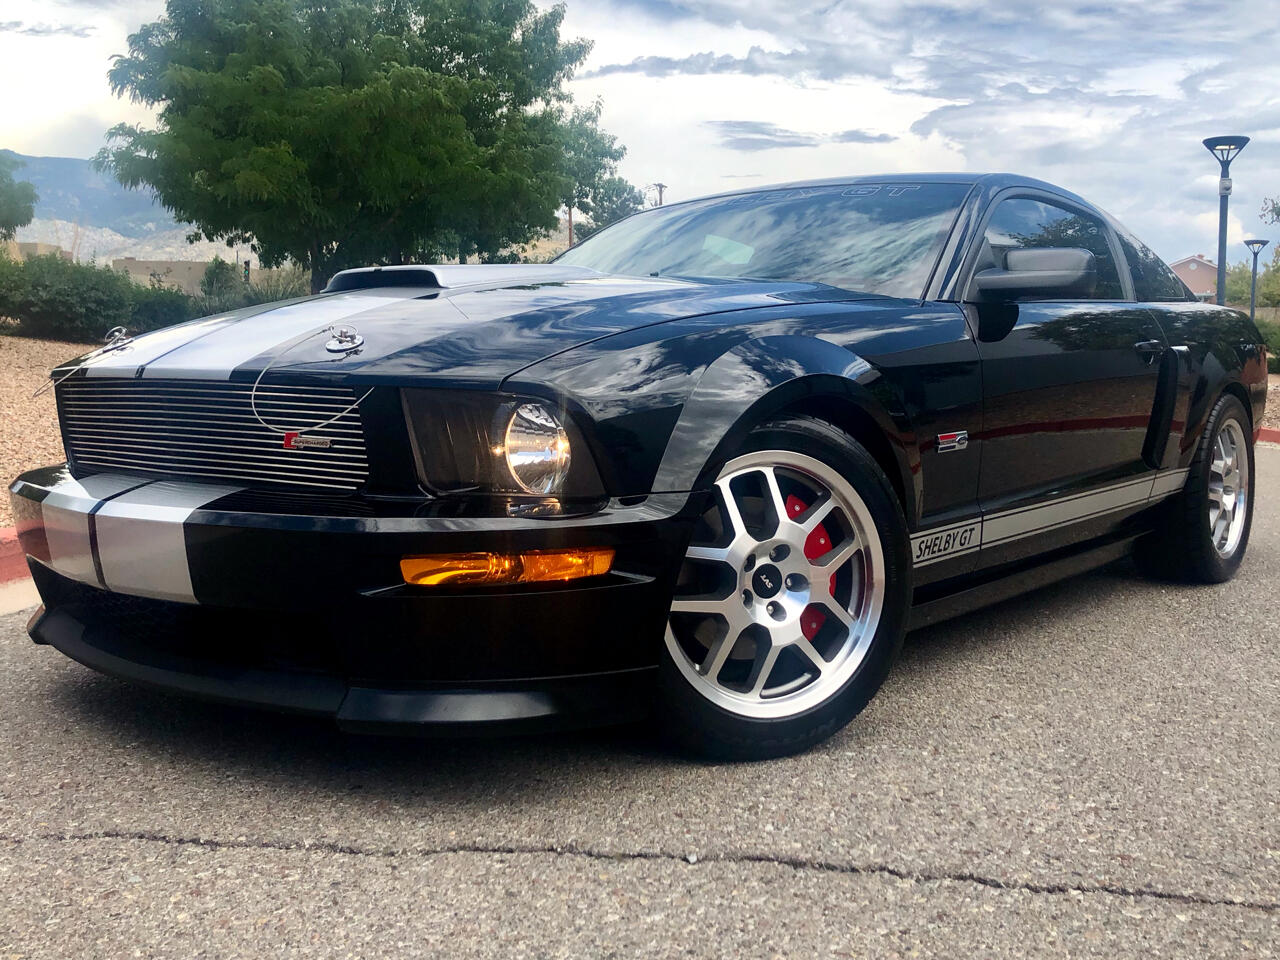 2007 Ford Mustang 2dr Cpe Shelby GT